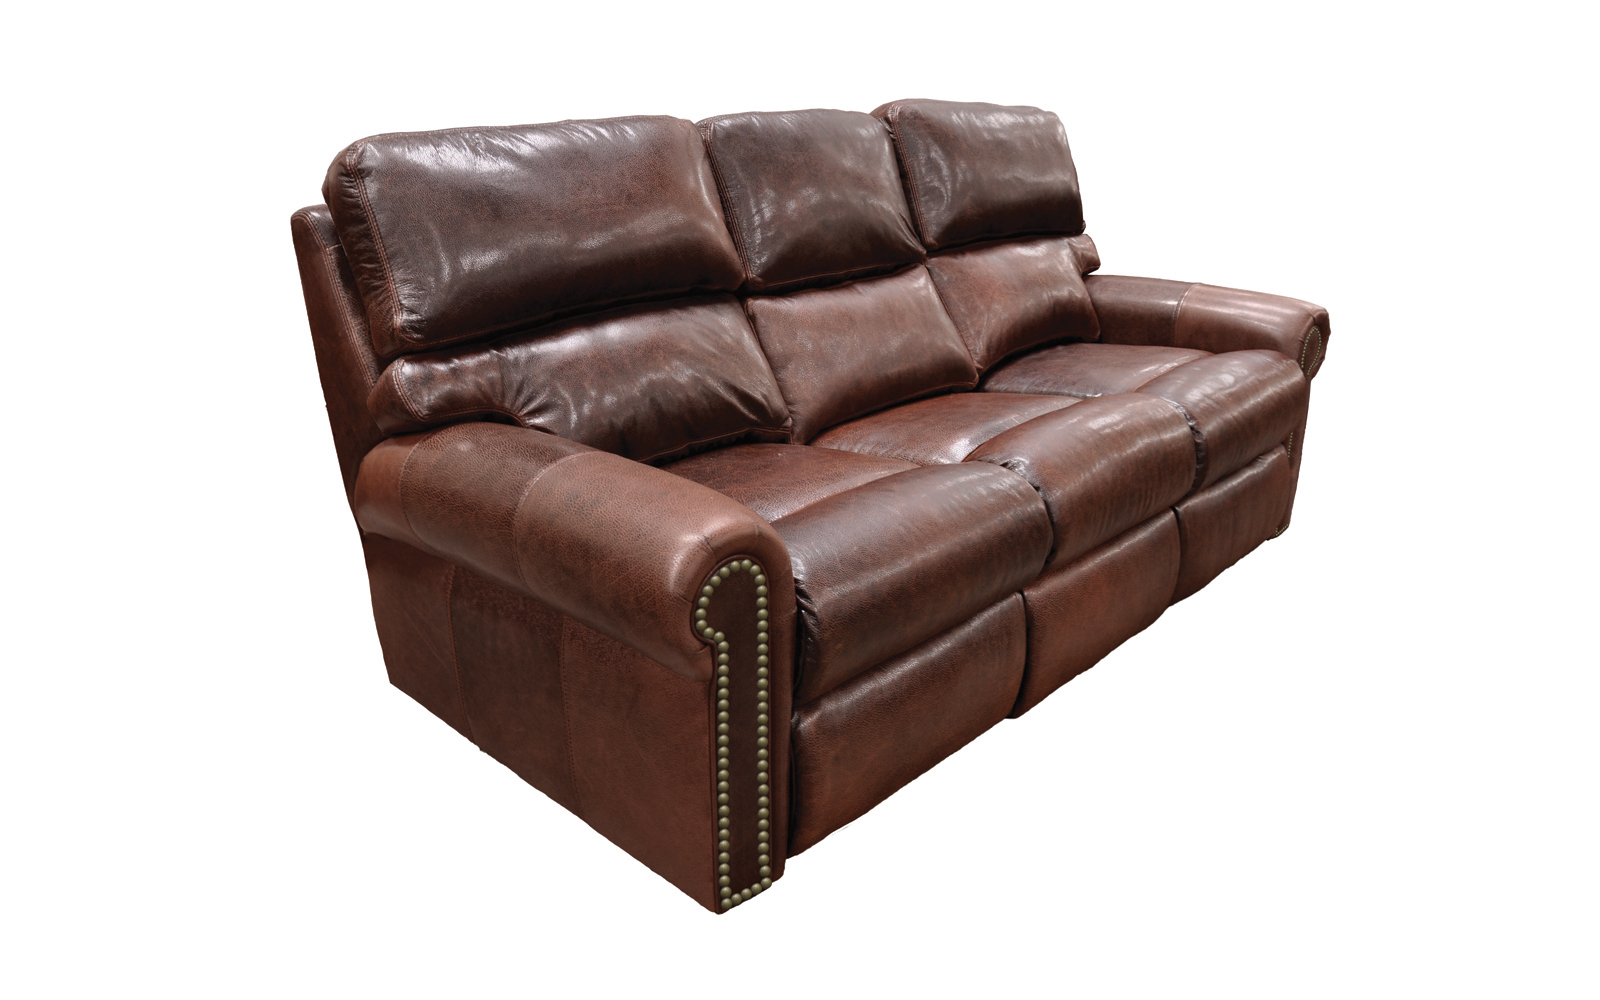 connor reclining sofa arizona leather interiors. Black Bedroom Furniture Sets. Home Design Ideas